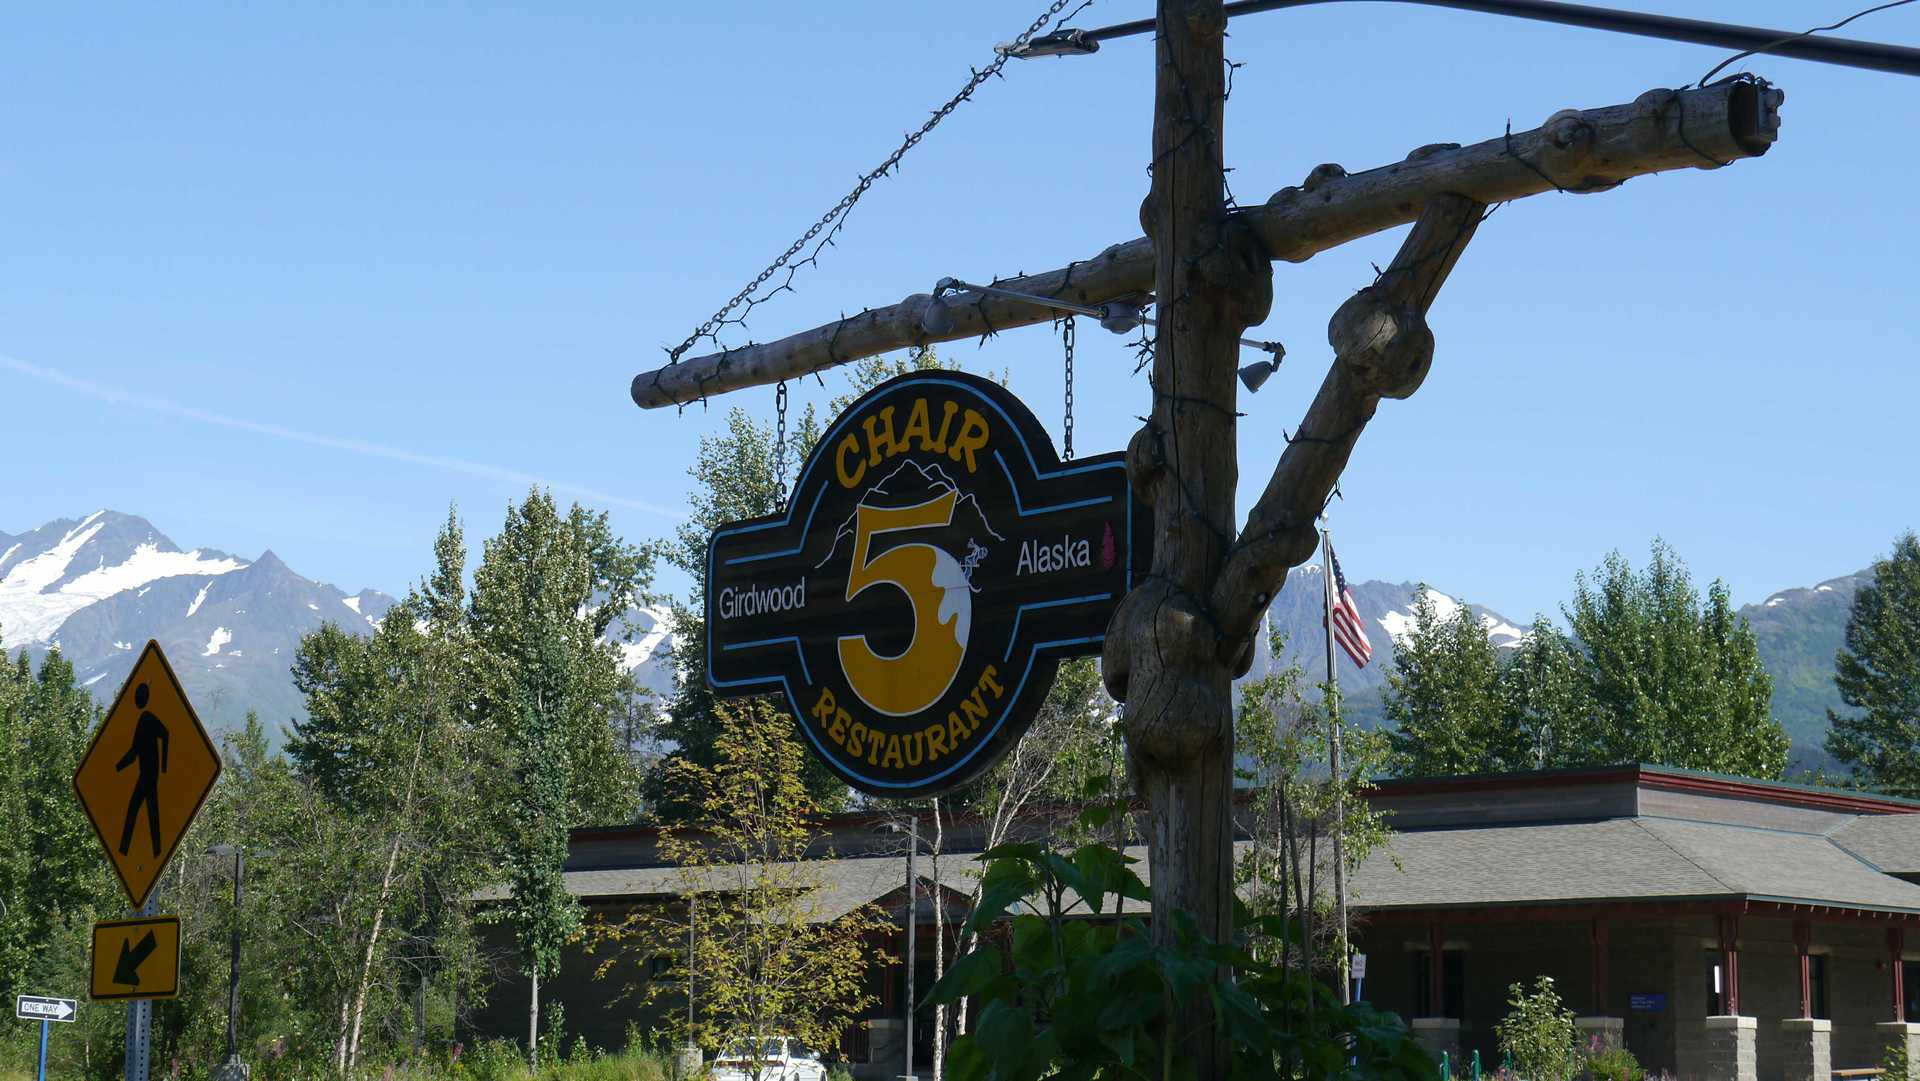 Girdwood, Alaska | elise81, daytime, sign, outdoors